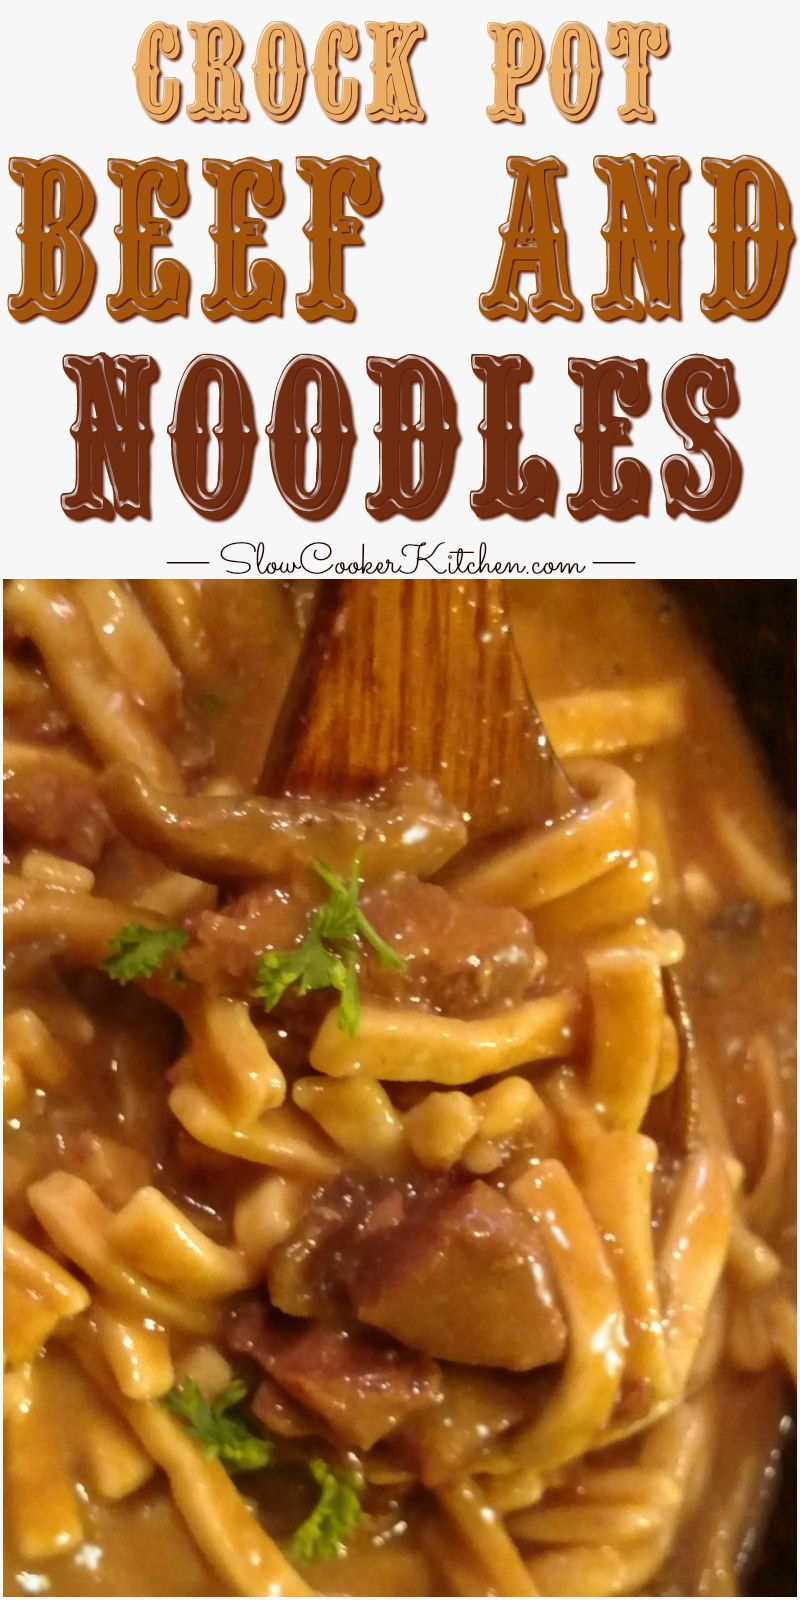 Deliciously Simple Crock Pot Beef And Noodles Recipe Crock Pot Beef And Noodles Recipe Ground Beef Crockpot Recipes Beef And Noodles